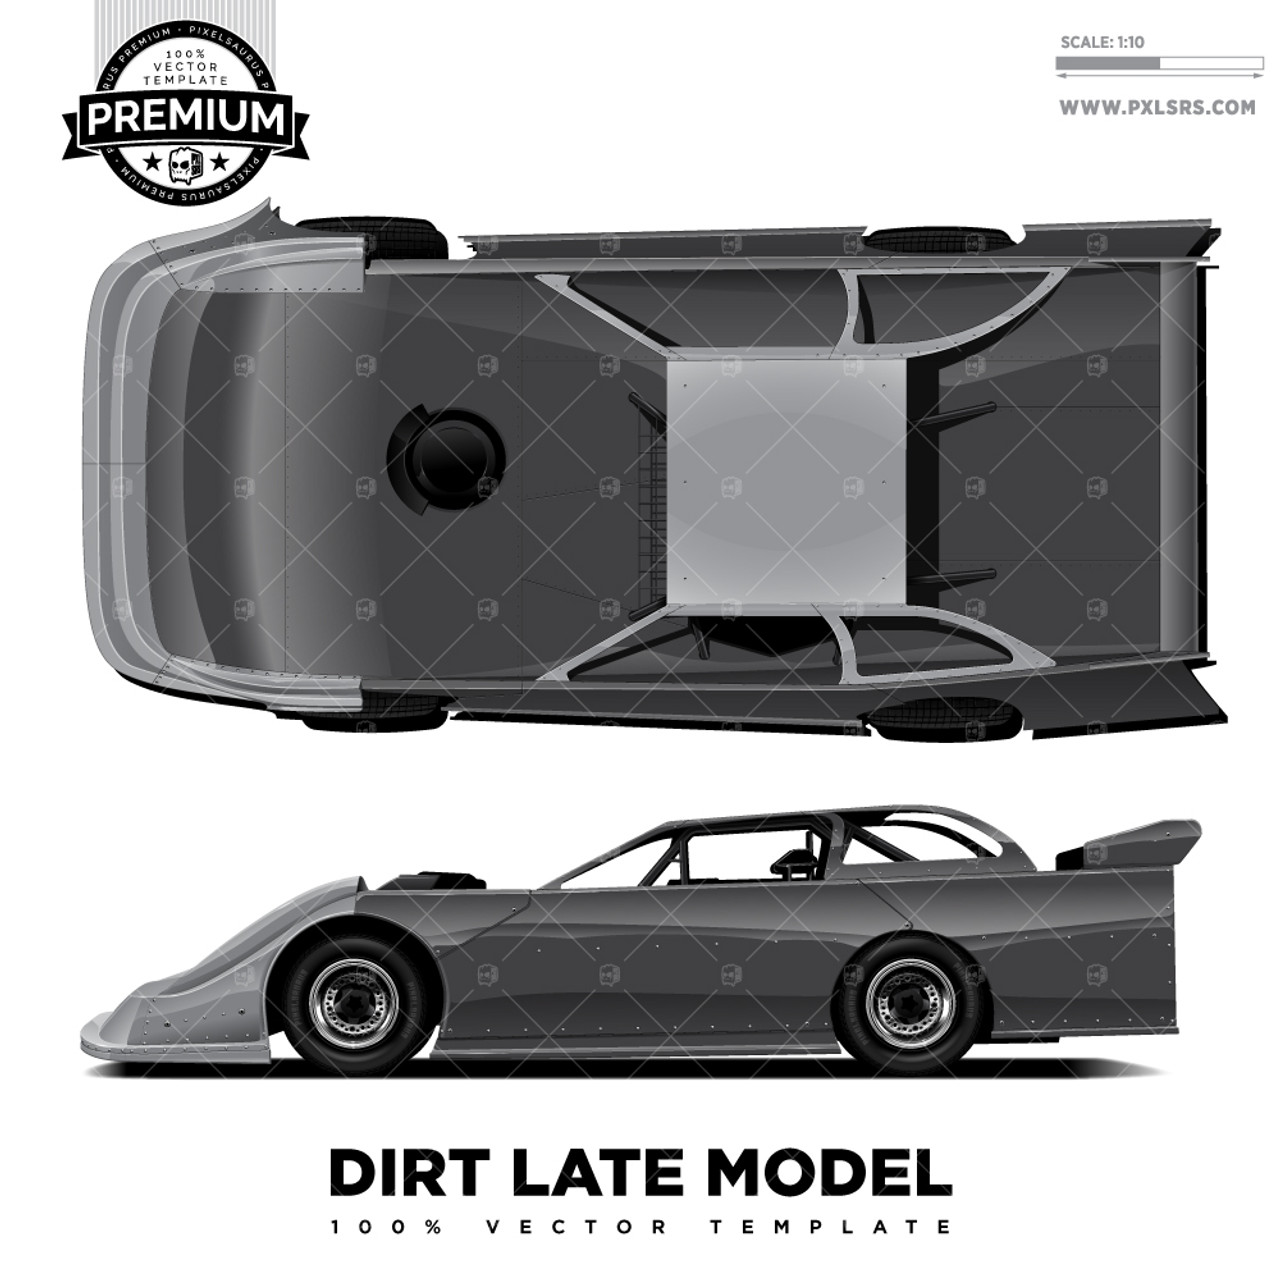 Dirt Late Model 'Premium' Vector Template